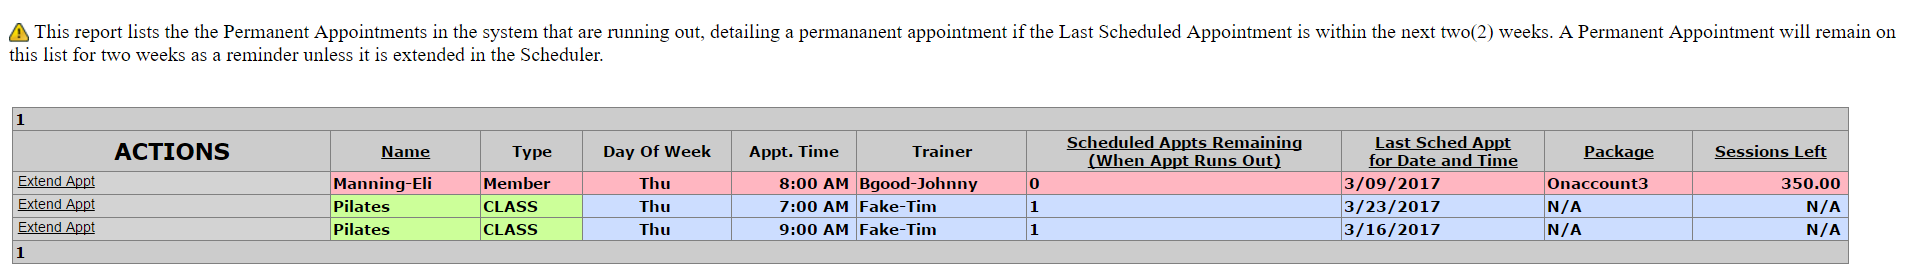 sched_appt_run_out.png